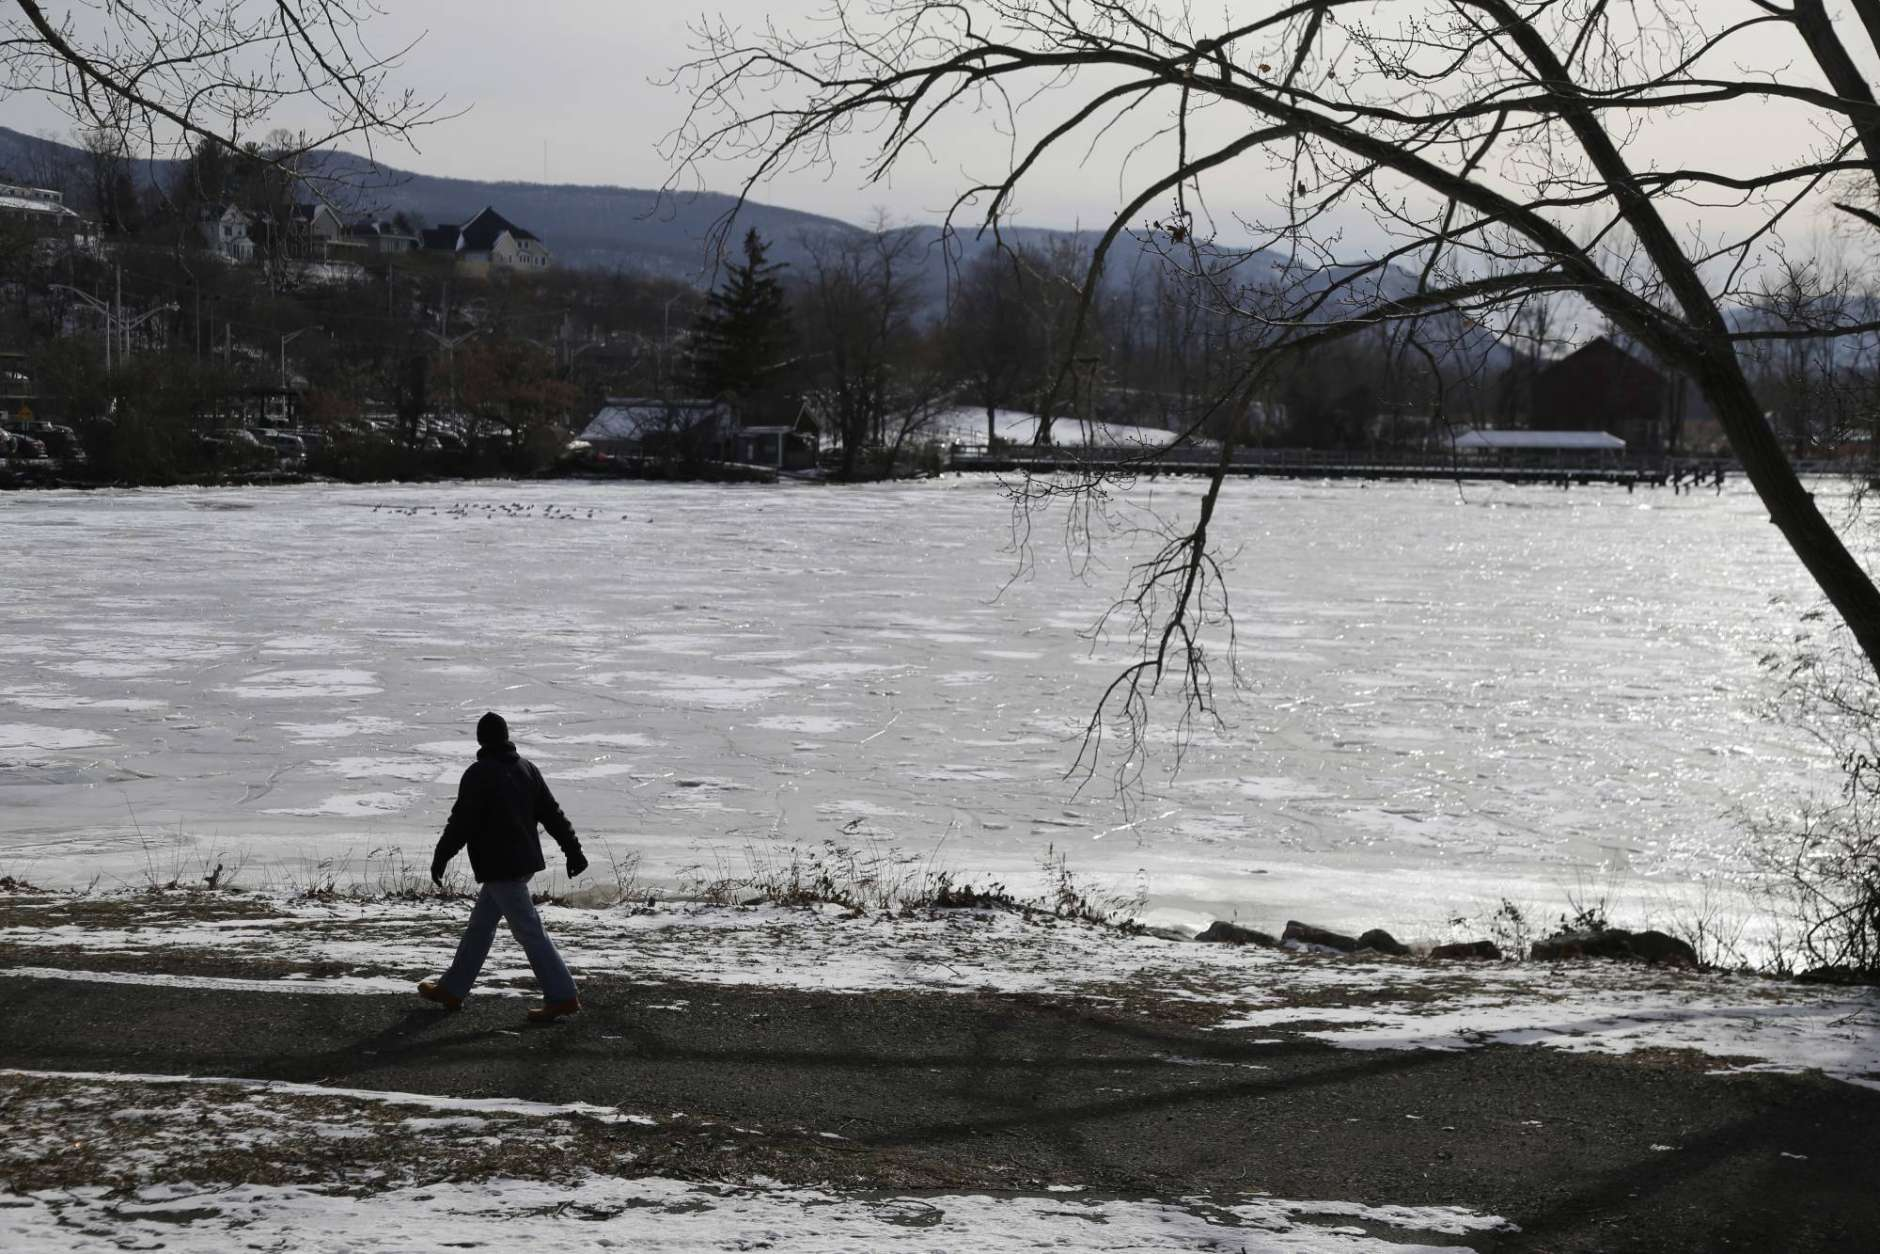 A man walks past a frozen part of the Hudson River in Beacon, N.Y., Wednesday, Jan. 3, 2018. Bitterly cold temperatures gripped much of the nation on Tuesday, testing the mettle of even winter-wise northerners and delivering a shock to those accustomed to far milder weather in the South. (AP Photo/Seth Wenig)